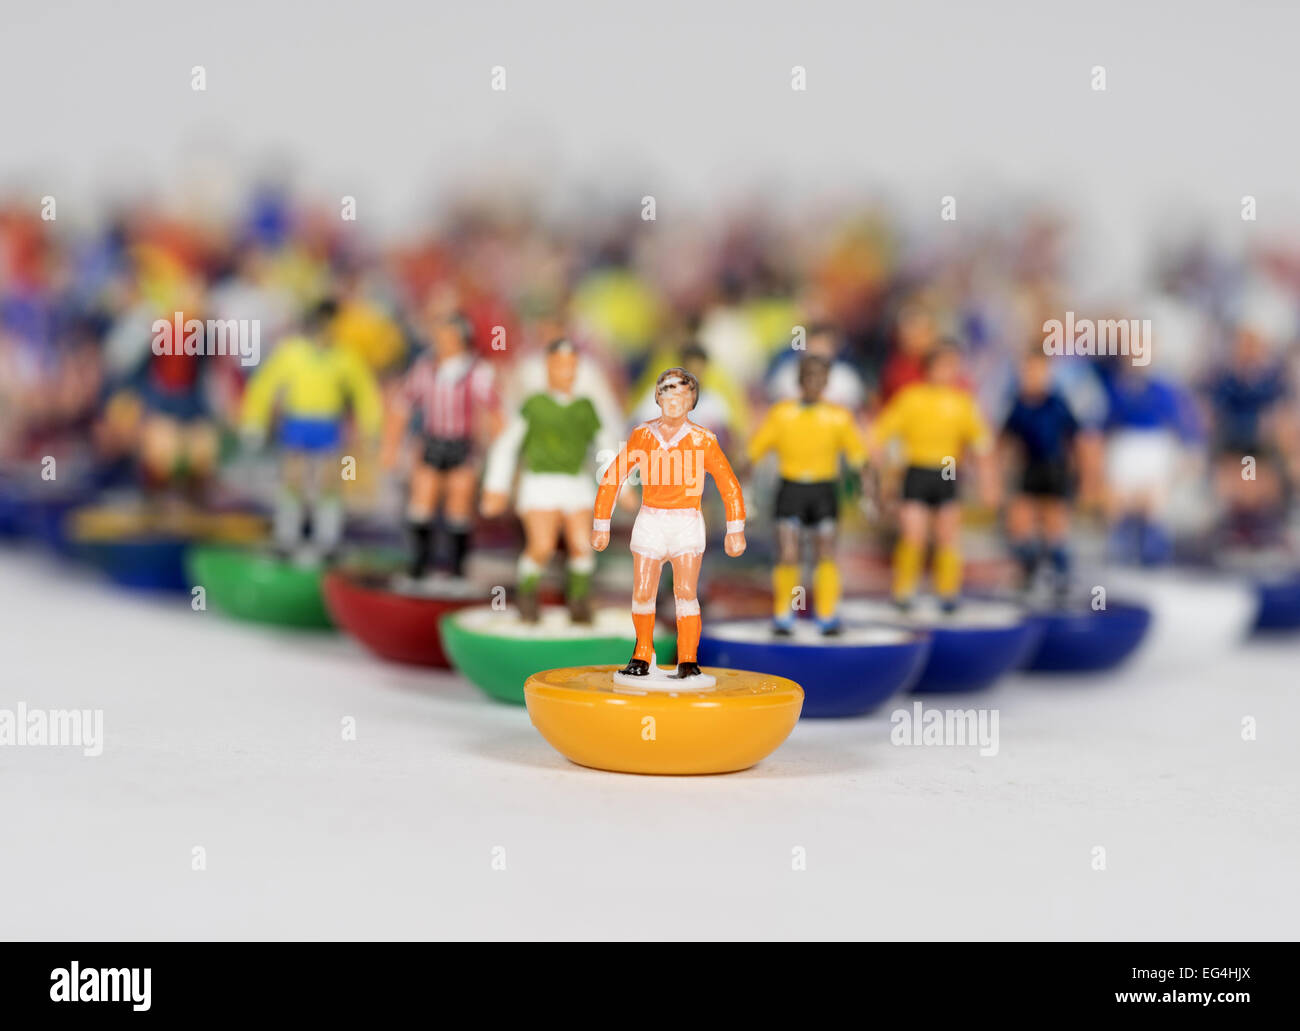 A mixture of individual subbuteo table football figures of different teams with Blackpool colours at the front - Stock Image